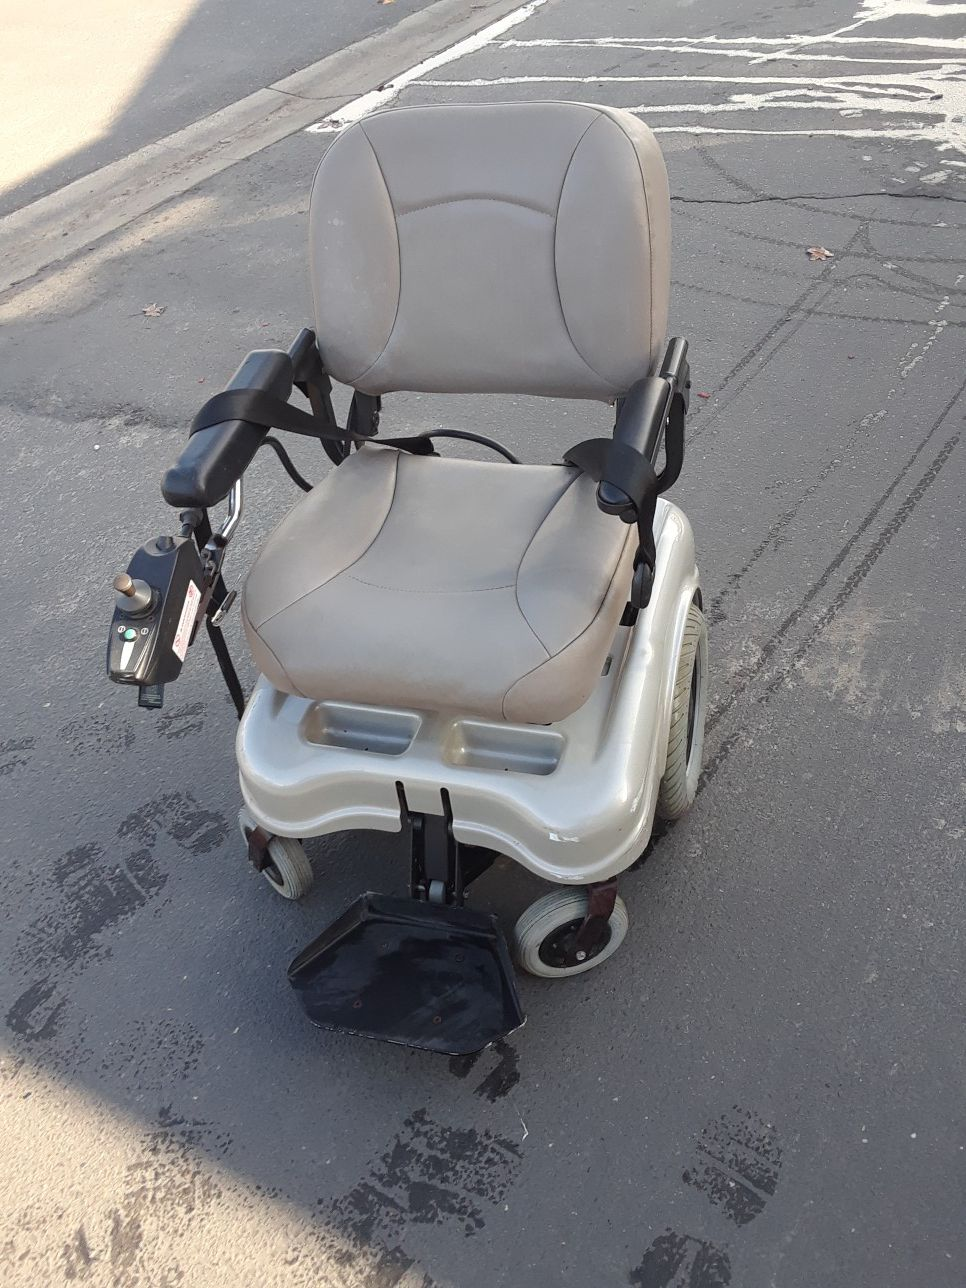 POWER CHAIR for in house mobility this power chair will spin in a circle turn very tight corners and will accommodate up to 450 lbs.